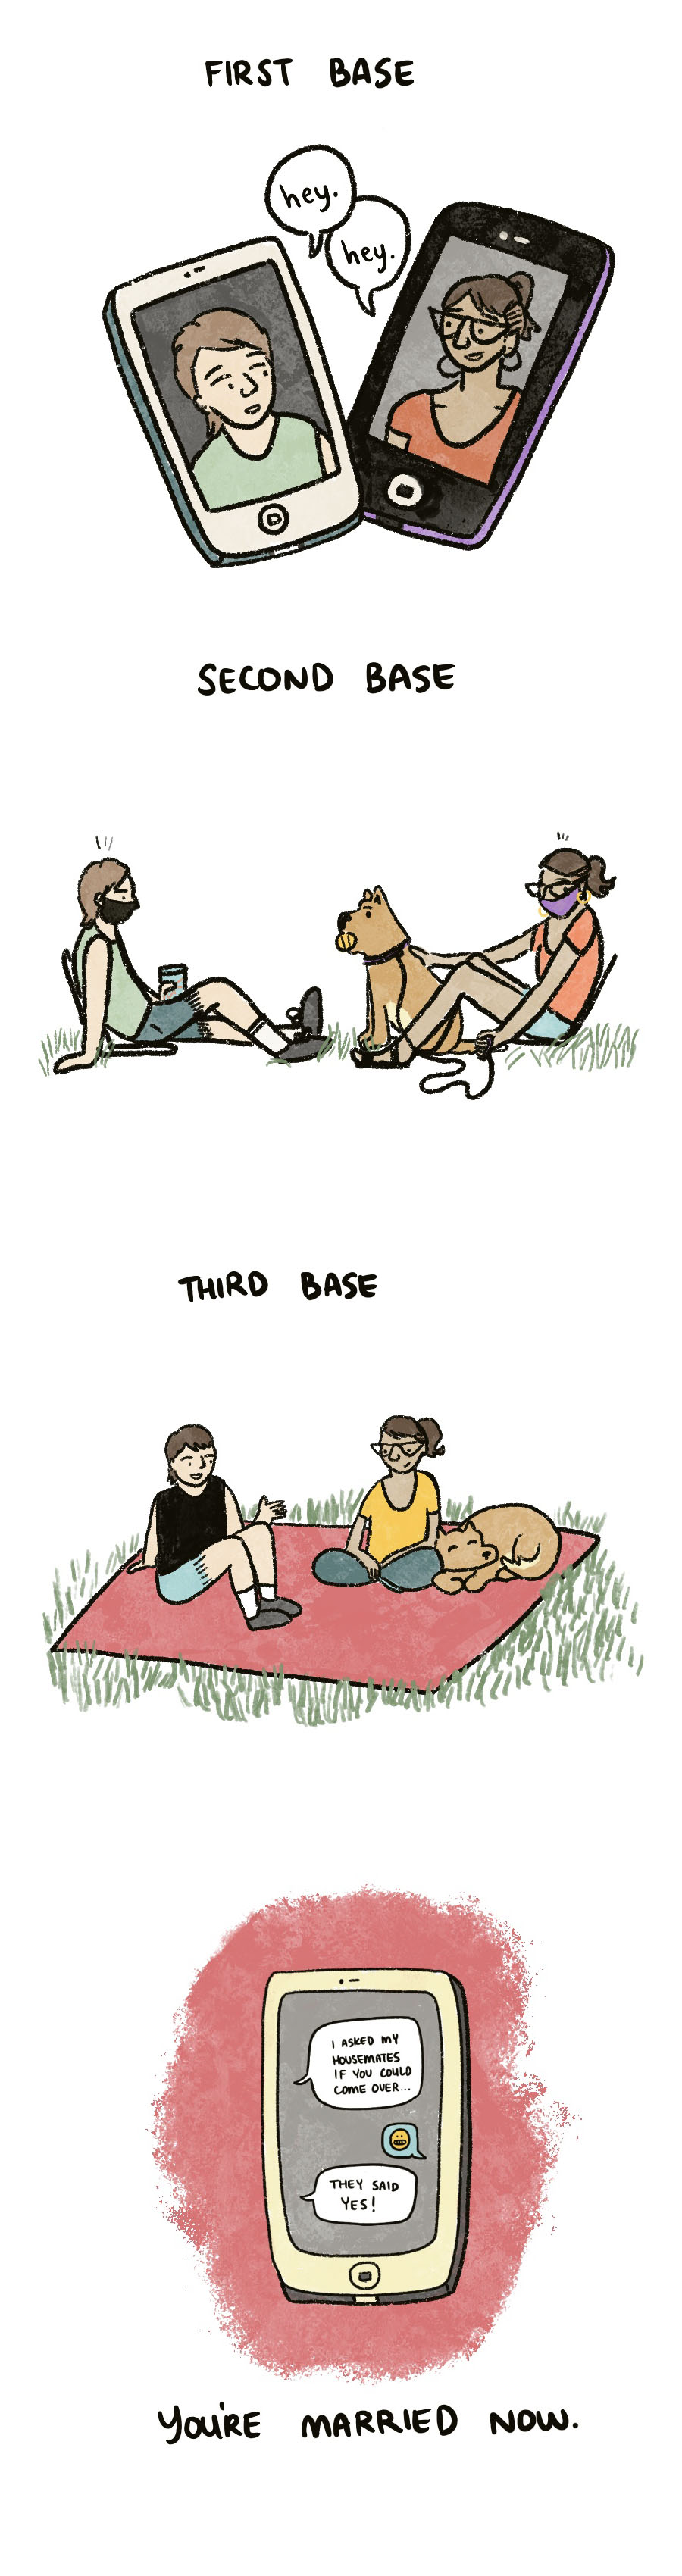 A 4 panel comic about dating during the pandemic. Panel 1: Titled First Base. Two smart phones with two people on a FaceTime date, each saying hey to the other. Panel 2: Titled Second Base. The same two people are on a social distance date in the park. Both are wearing masks and sitting six feet apart. One is with a cute dog holding a ball in its mouth. Panel 3: Titled Third Base. The same two people are sitting on a blanket together in the park. They are not wearing masks but they are smiling and talking. The cute dog sleeps peacefully next to its person. Panel 4: A smartphone shows a text message conversation that goes like this: Person 1: I asked my housemates if you could come over… Person 2: Nervous face emoji. Person 1: They said yes! Final text reads: You're Married Now!